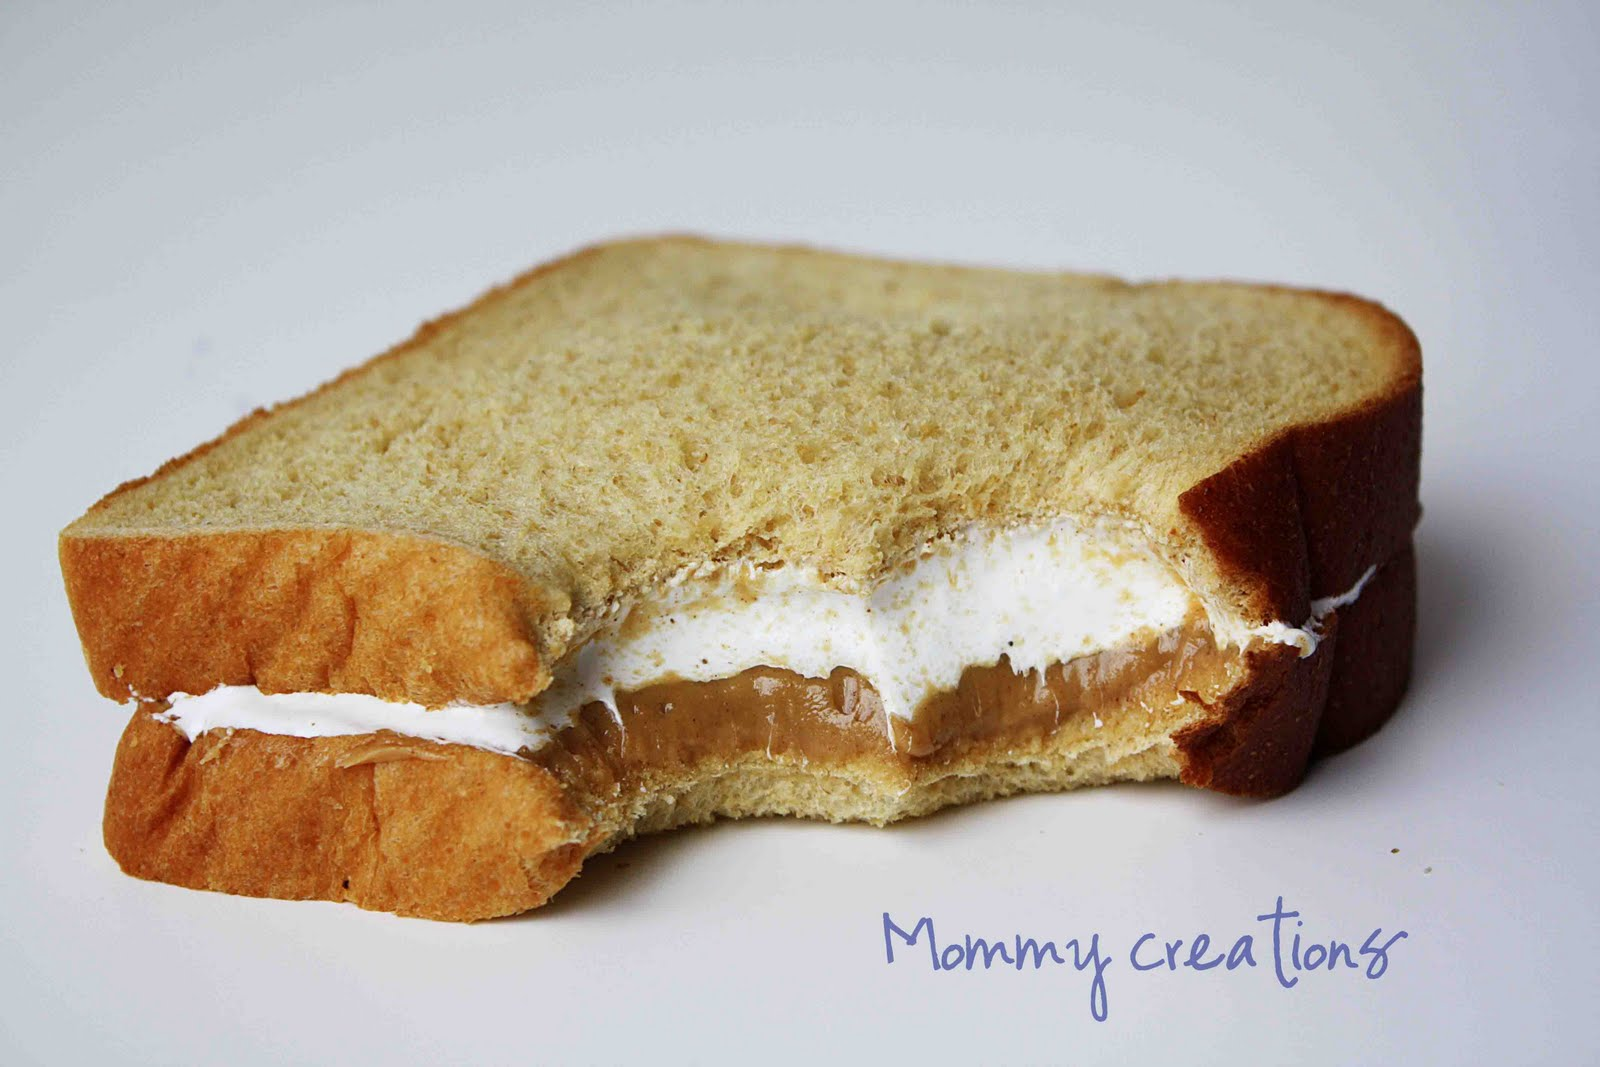 Nutella Banana Marshmallow Creme Panino Recipes — Dishmaps